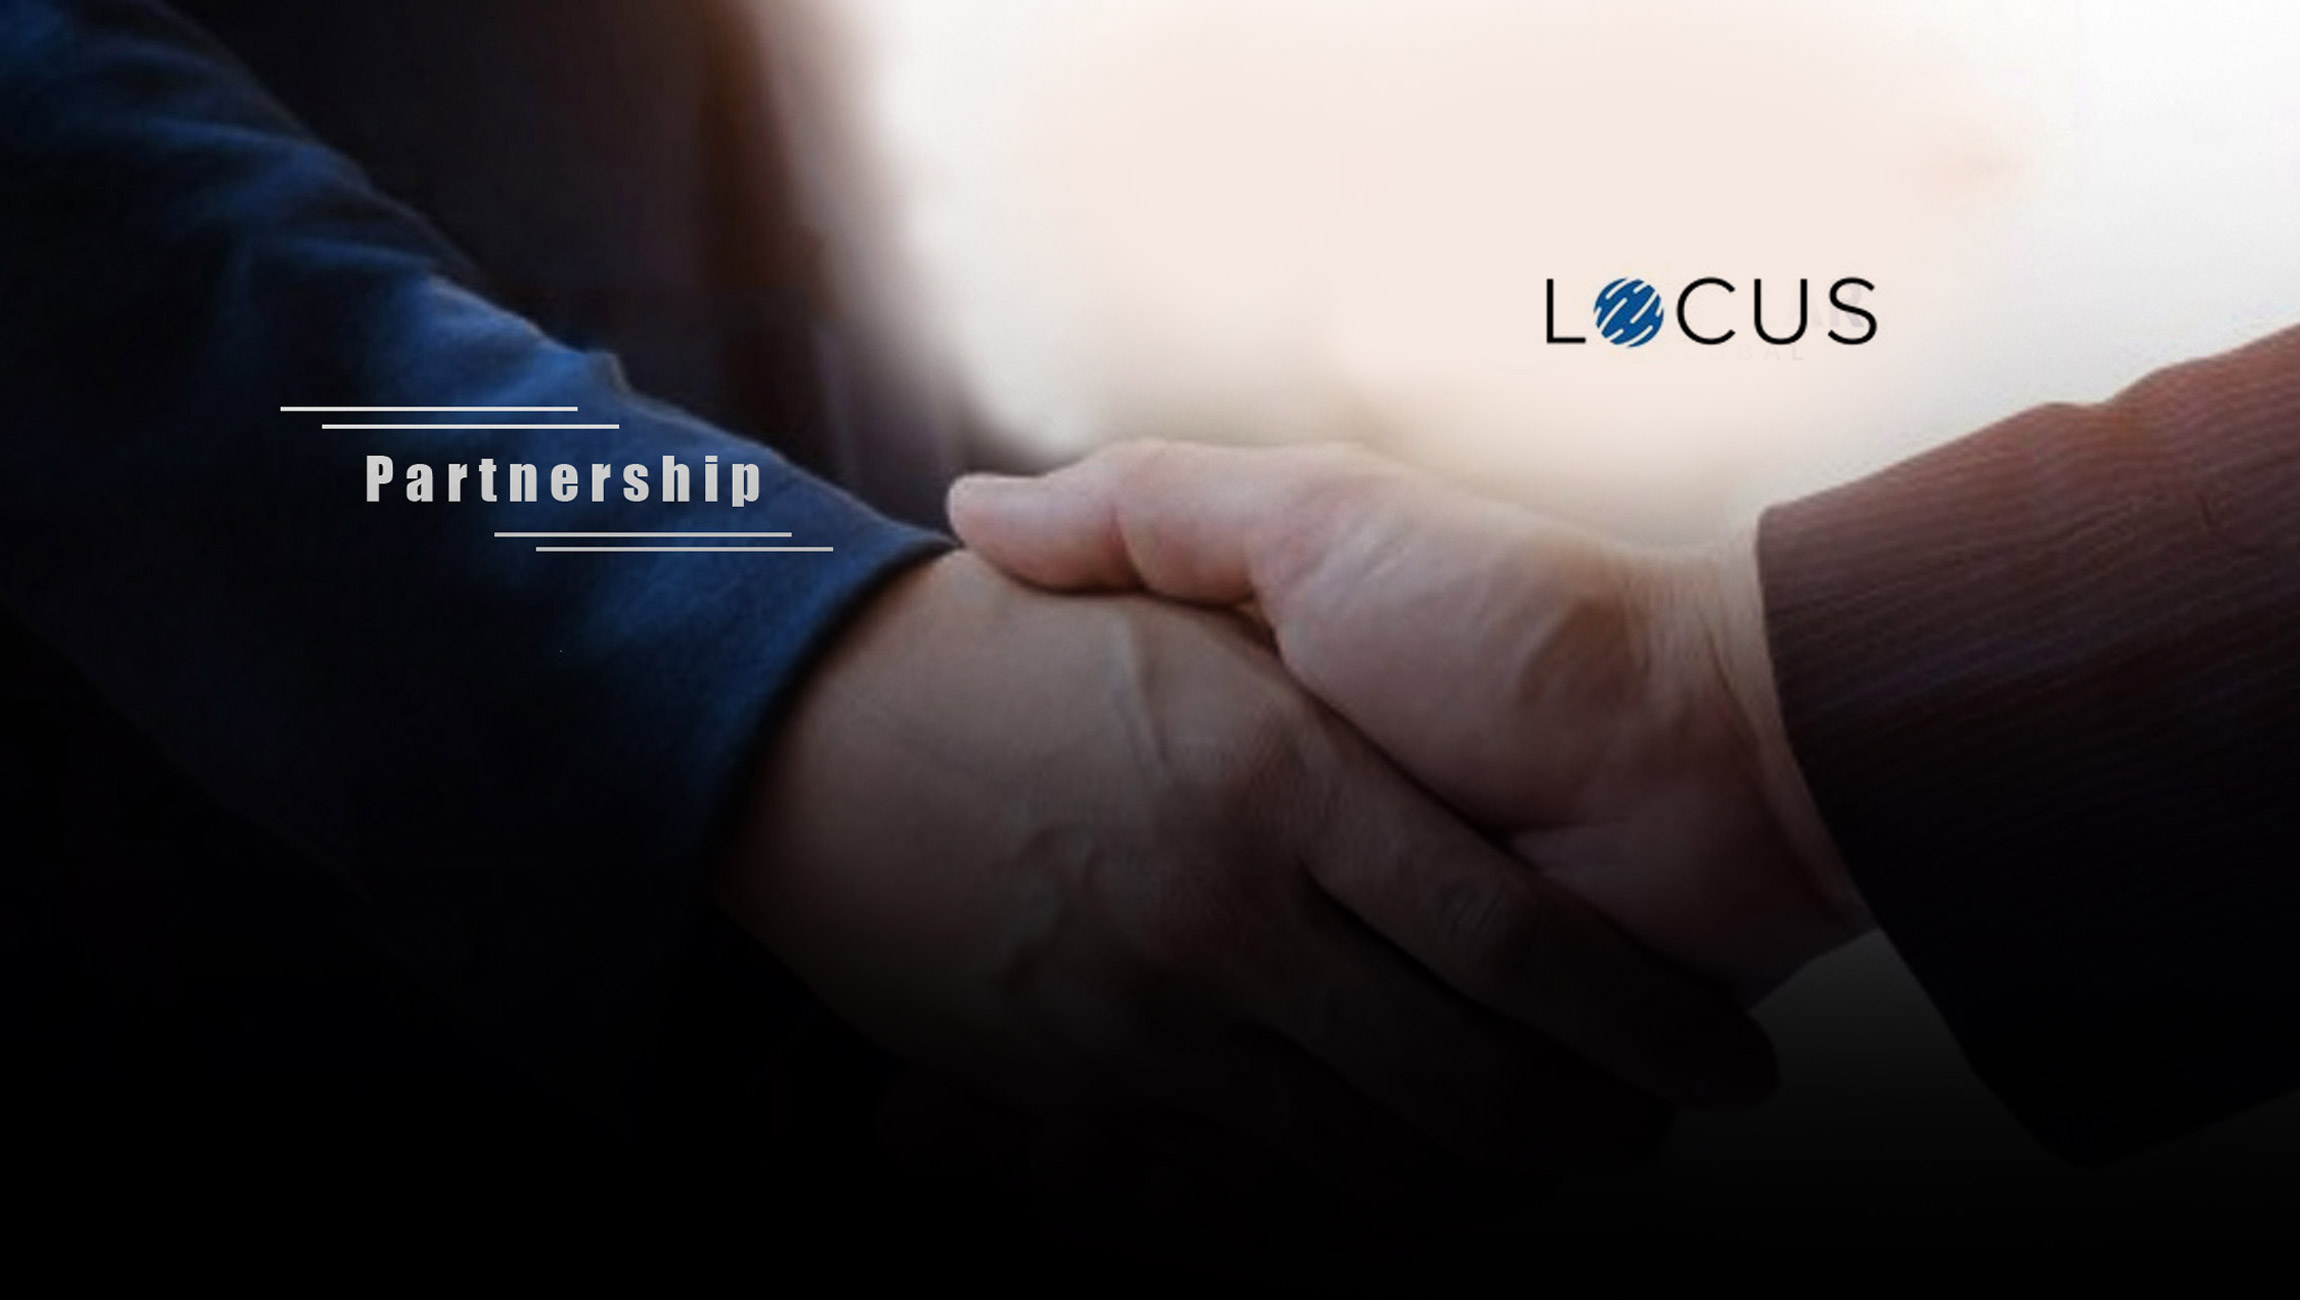 Locus Partners With Vinculum To Enable Omnichannel Commerce And Supply Chain Fulfillment For Customers